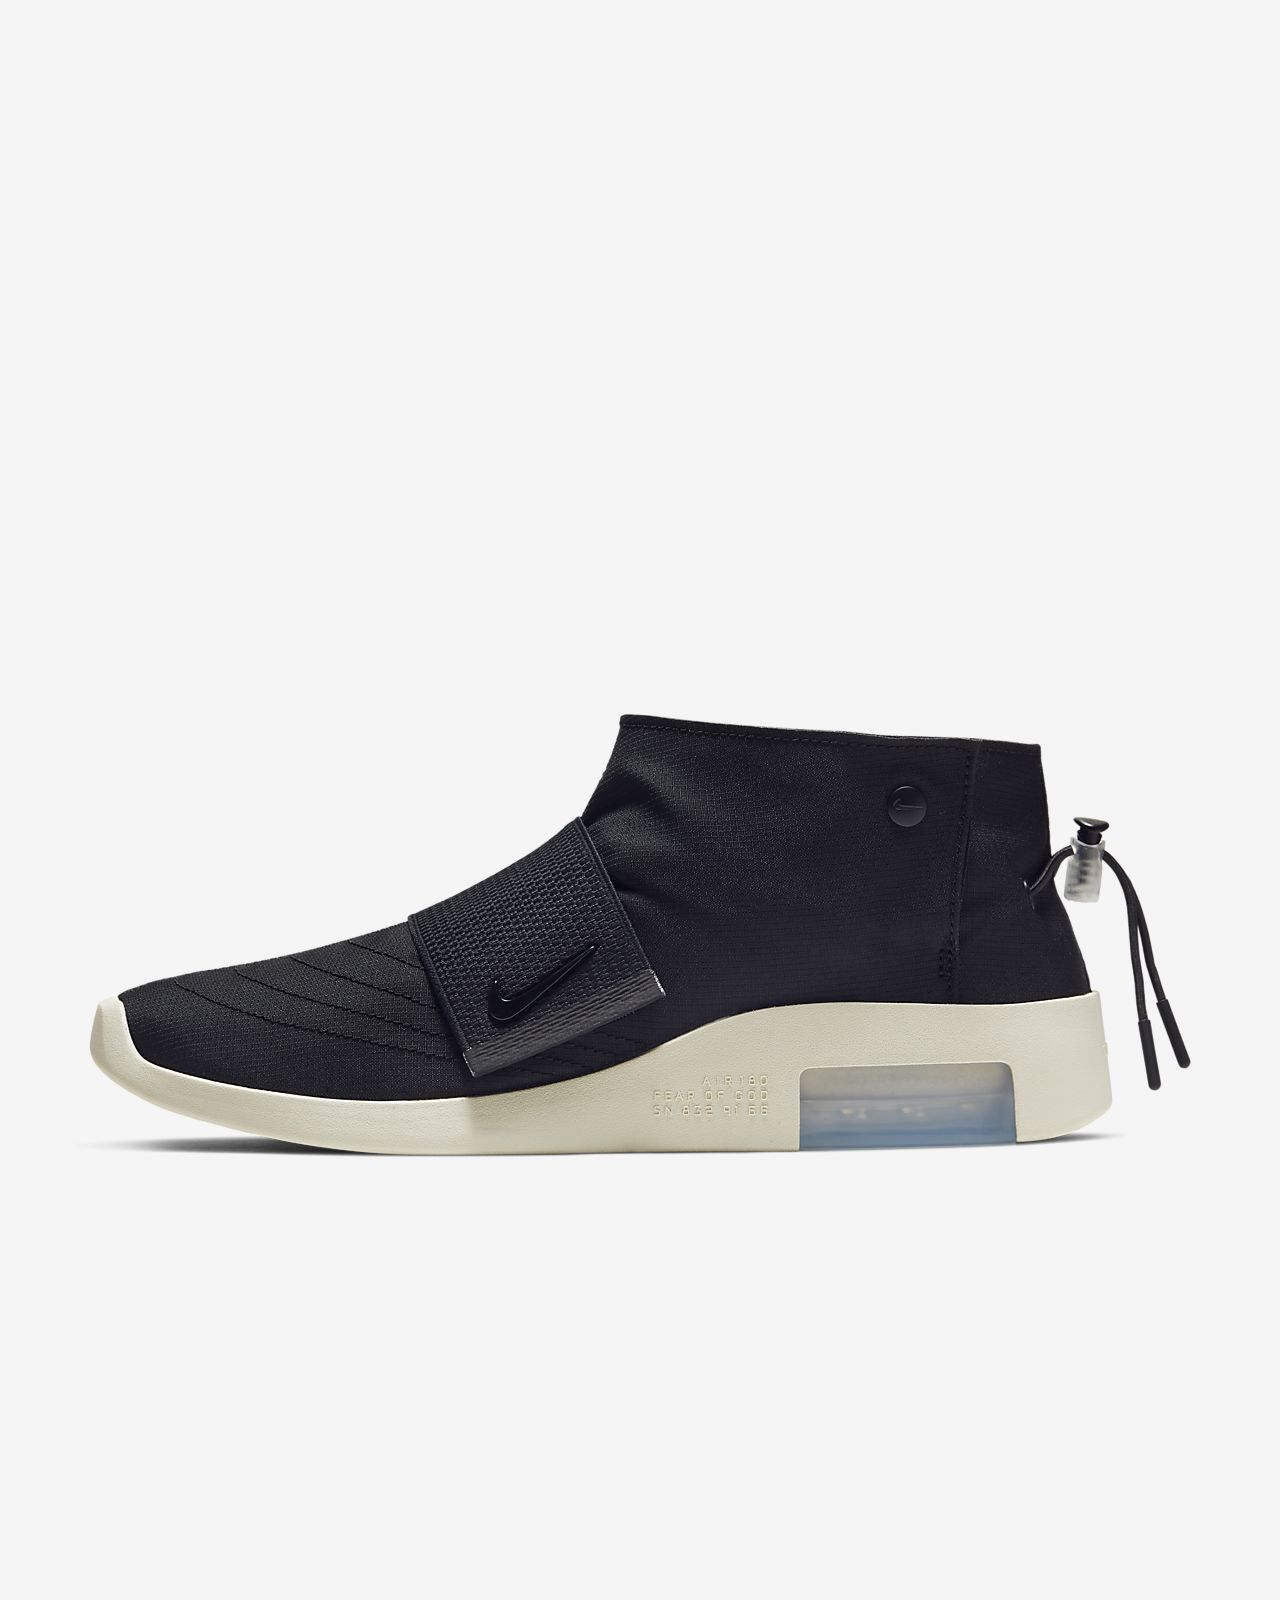 Men's x Nike Air God of Fear Moccasin DH2WE9I